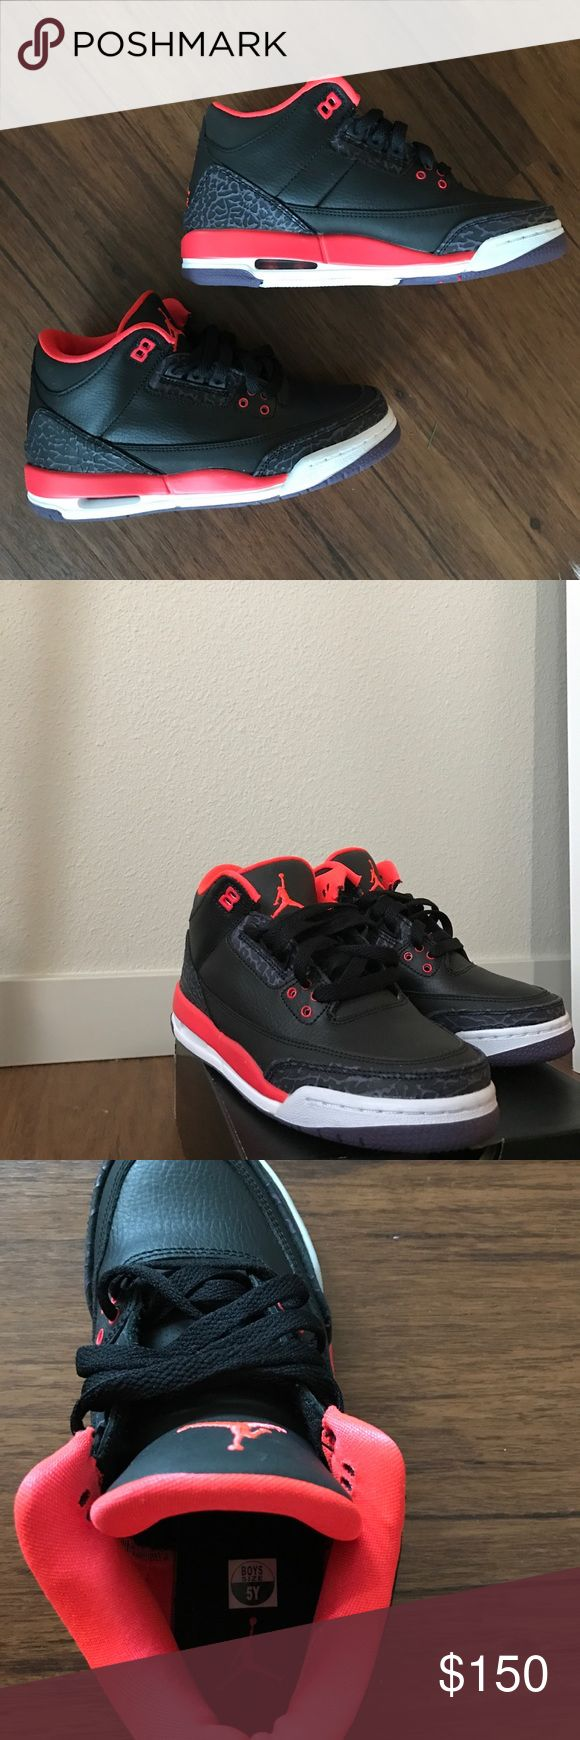 "Air Jordan Retro 3 size 5Y Air Jordan retro 3 ""crimson"" worn once.  These are a boys size 5, which correlates to about a 6 in womens. Jordan Shoes Sneakers"